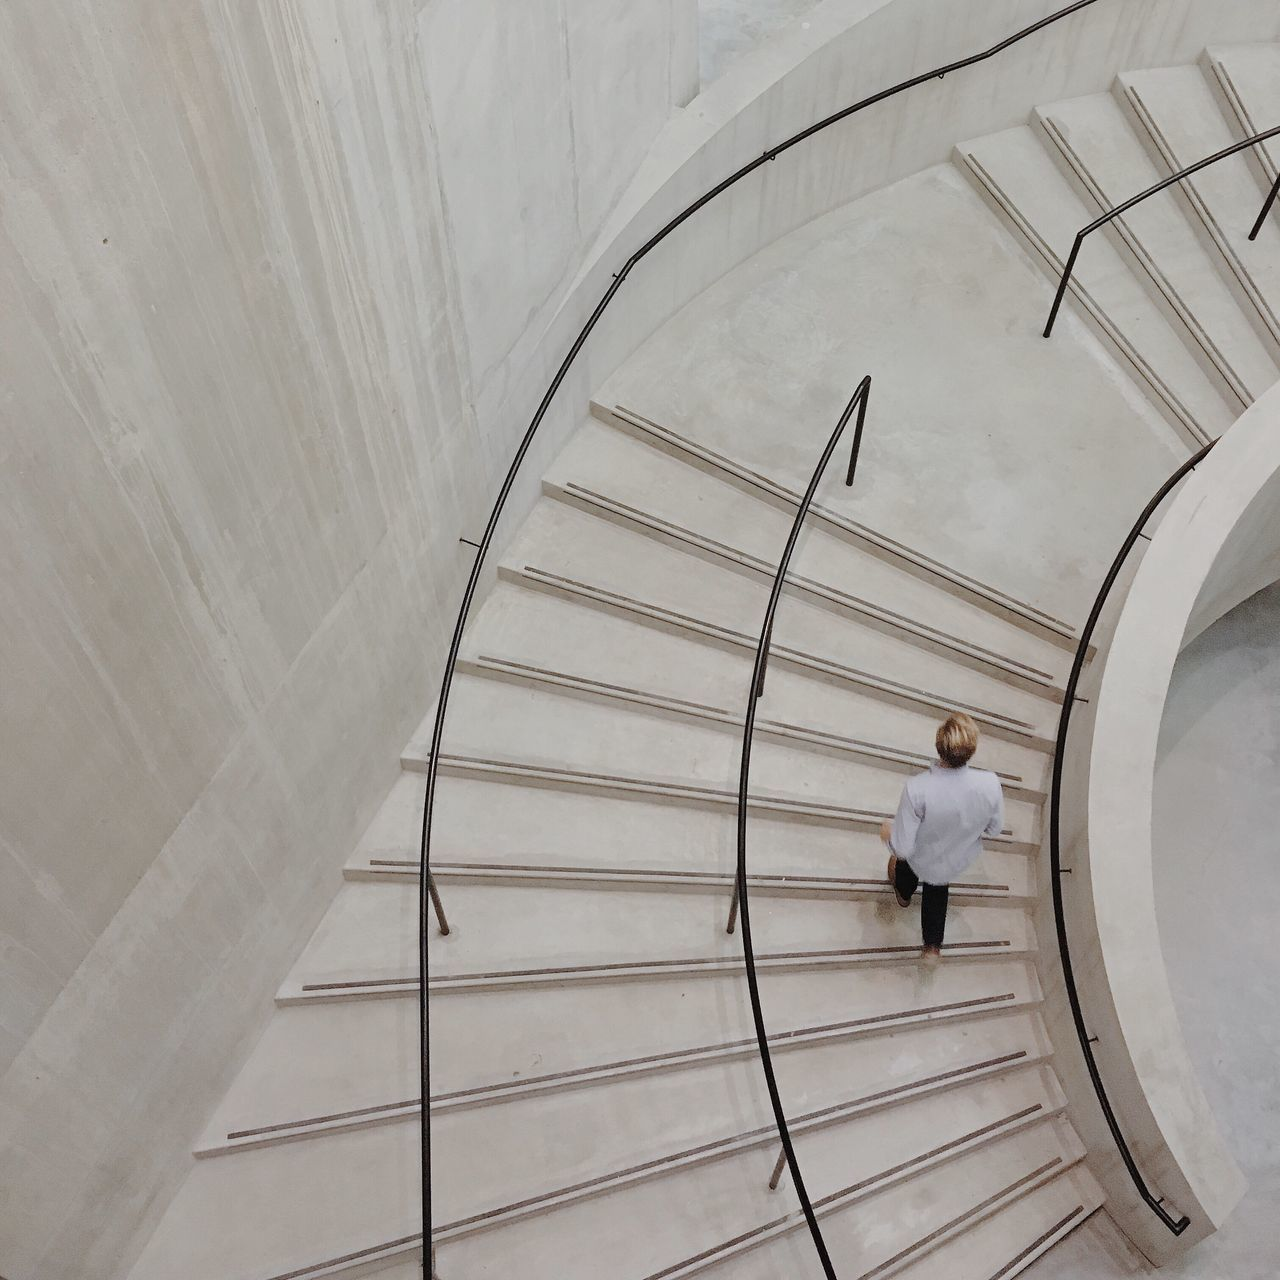 one person, architecture, full length, spiral, real people, one man only, standing, steps and staircases, built structure, steps, staircase, rear view, men, only men, adults only, concentric, day, outdoors, people, adult, astronomy